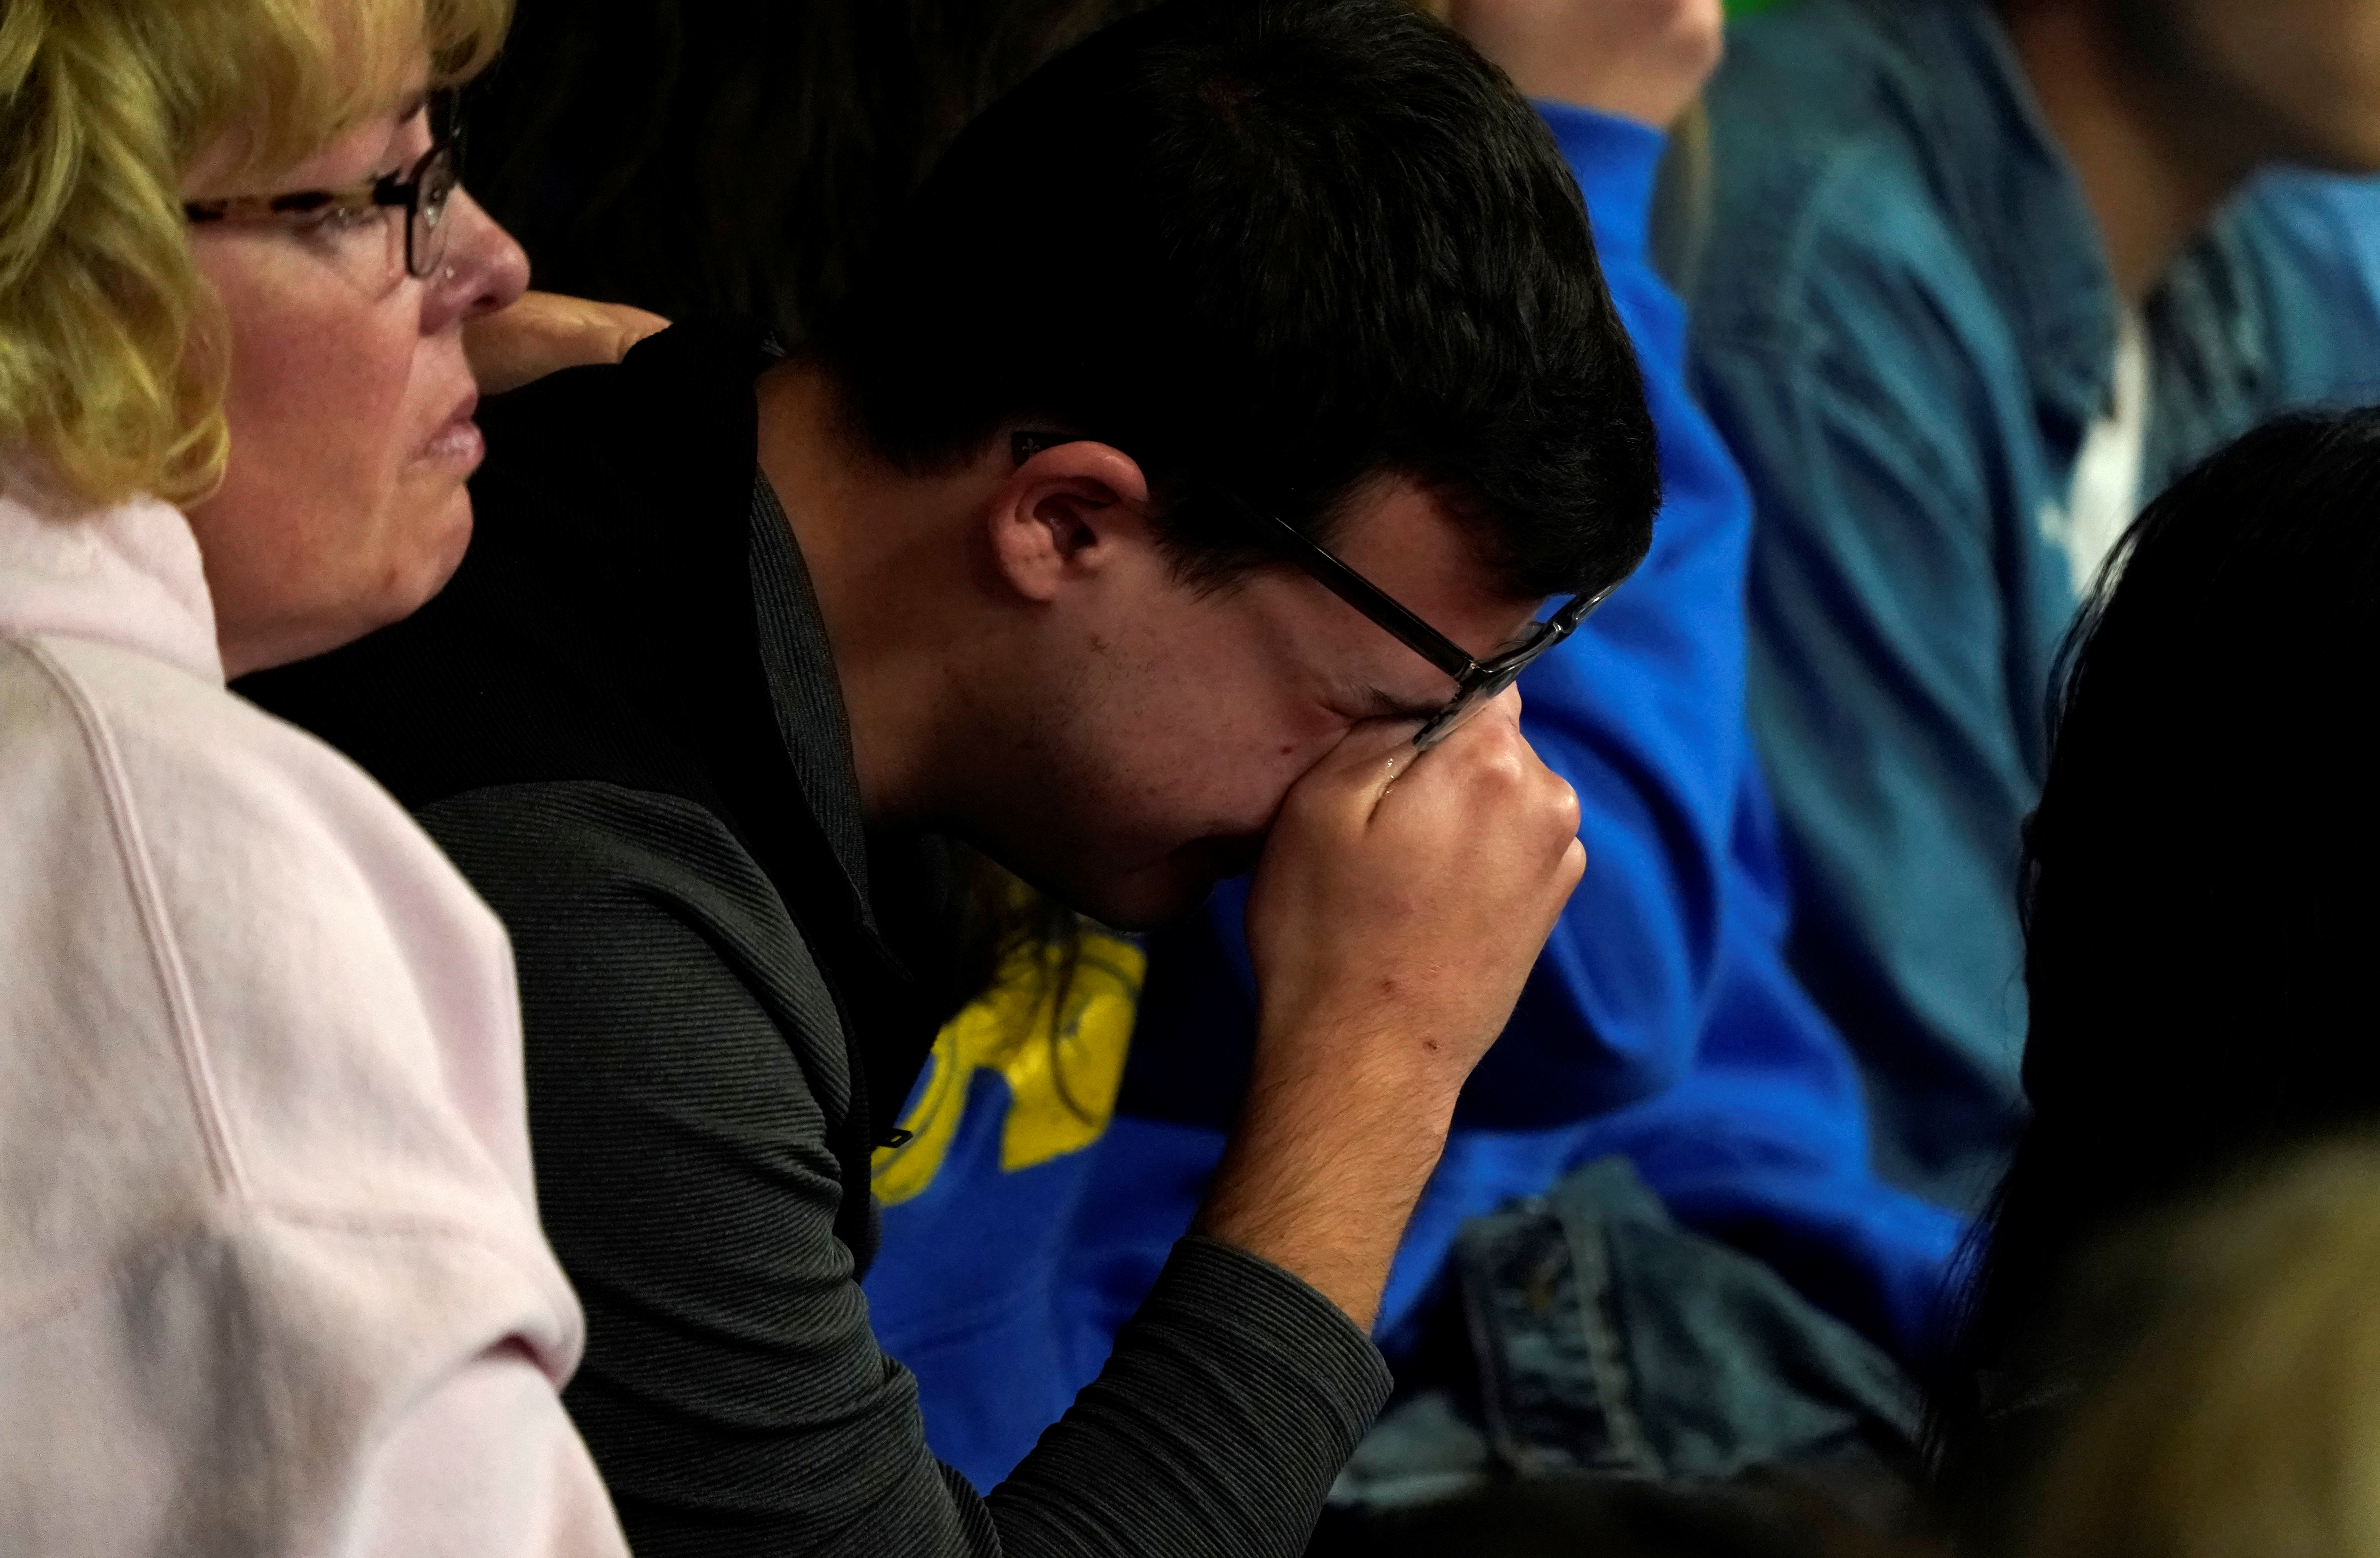 A man cries at a vigil for the victims of the shooting at the Science, Technology, Engineering and Math (STEM) School in Highlands Ranch, Colorado, U.S., May 8, 2019. REUTERS/Rick Wilking